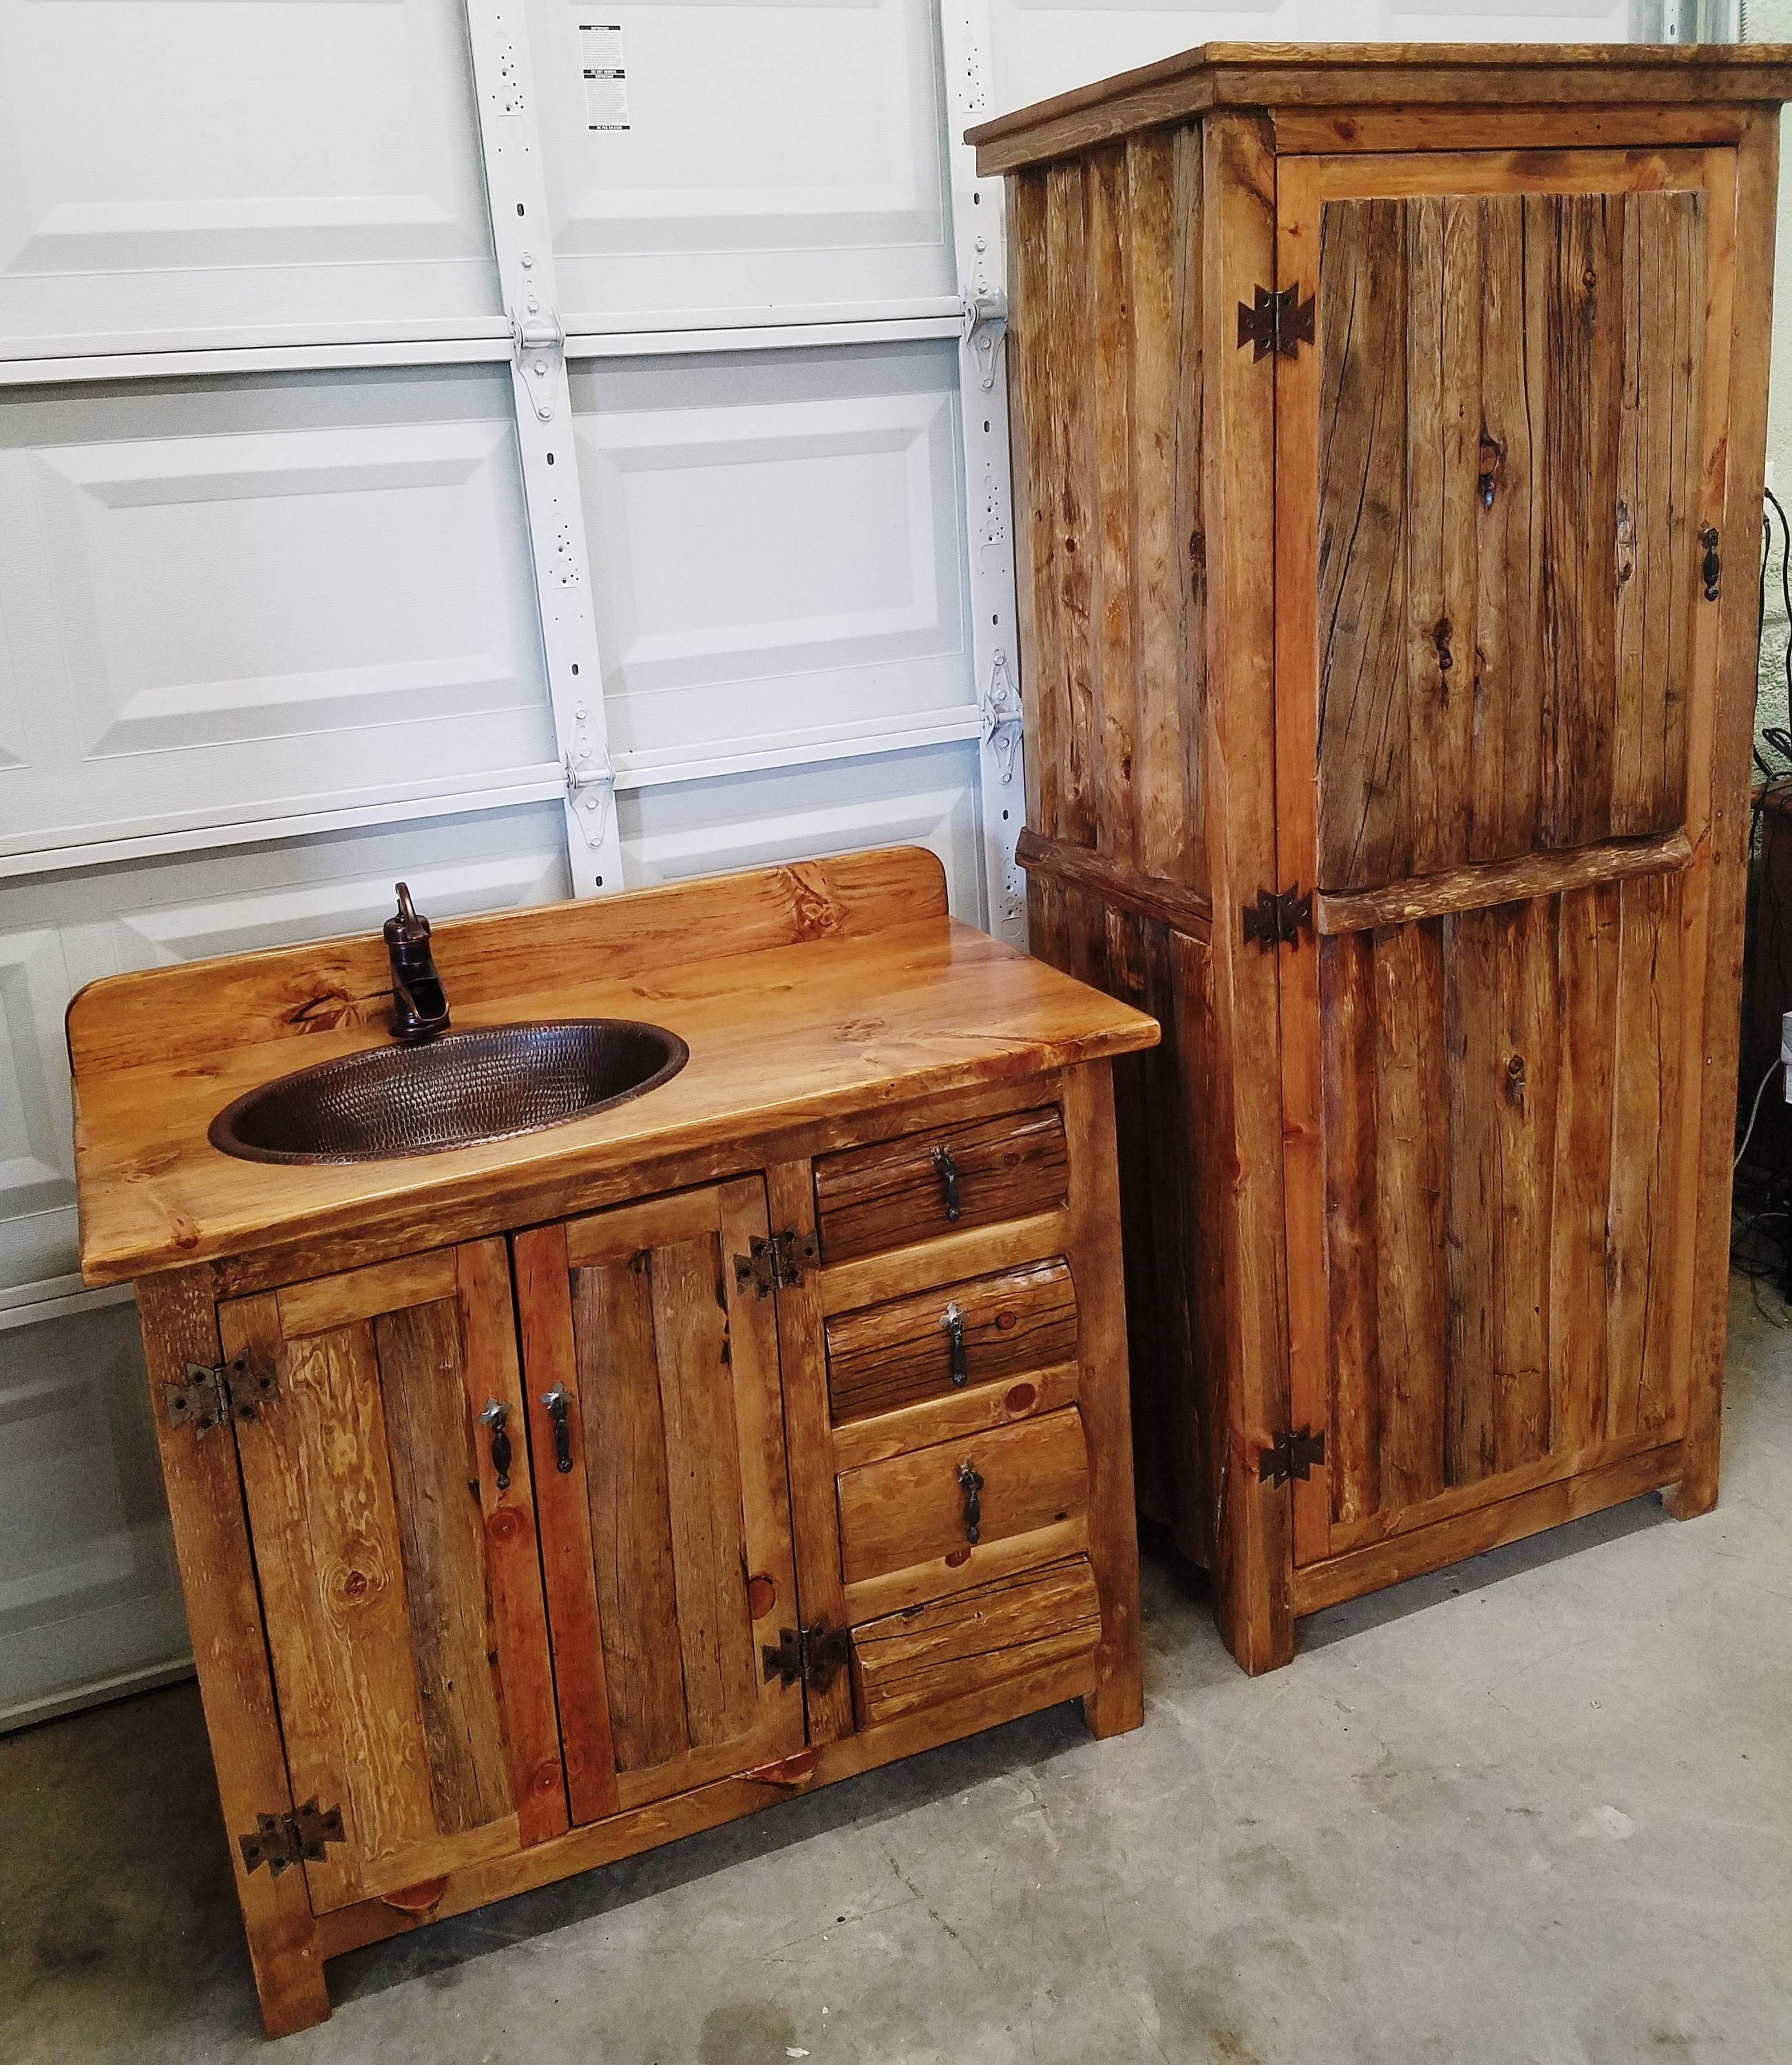 Rustic Linen Cabinet For Rustic Bathrooms 72 Tall 33 Wide Old Pine Logs Made For Our Rustic Bathroom Vanities Used In Kitchens Too